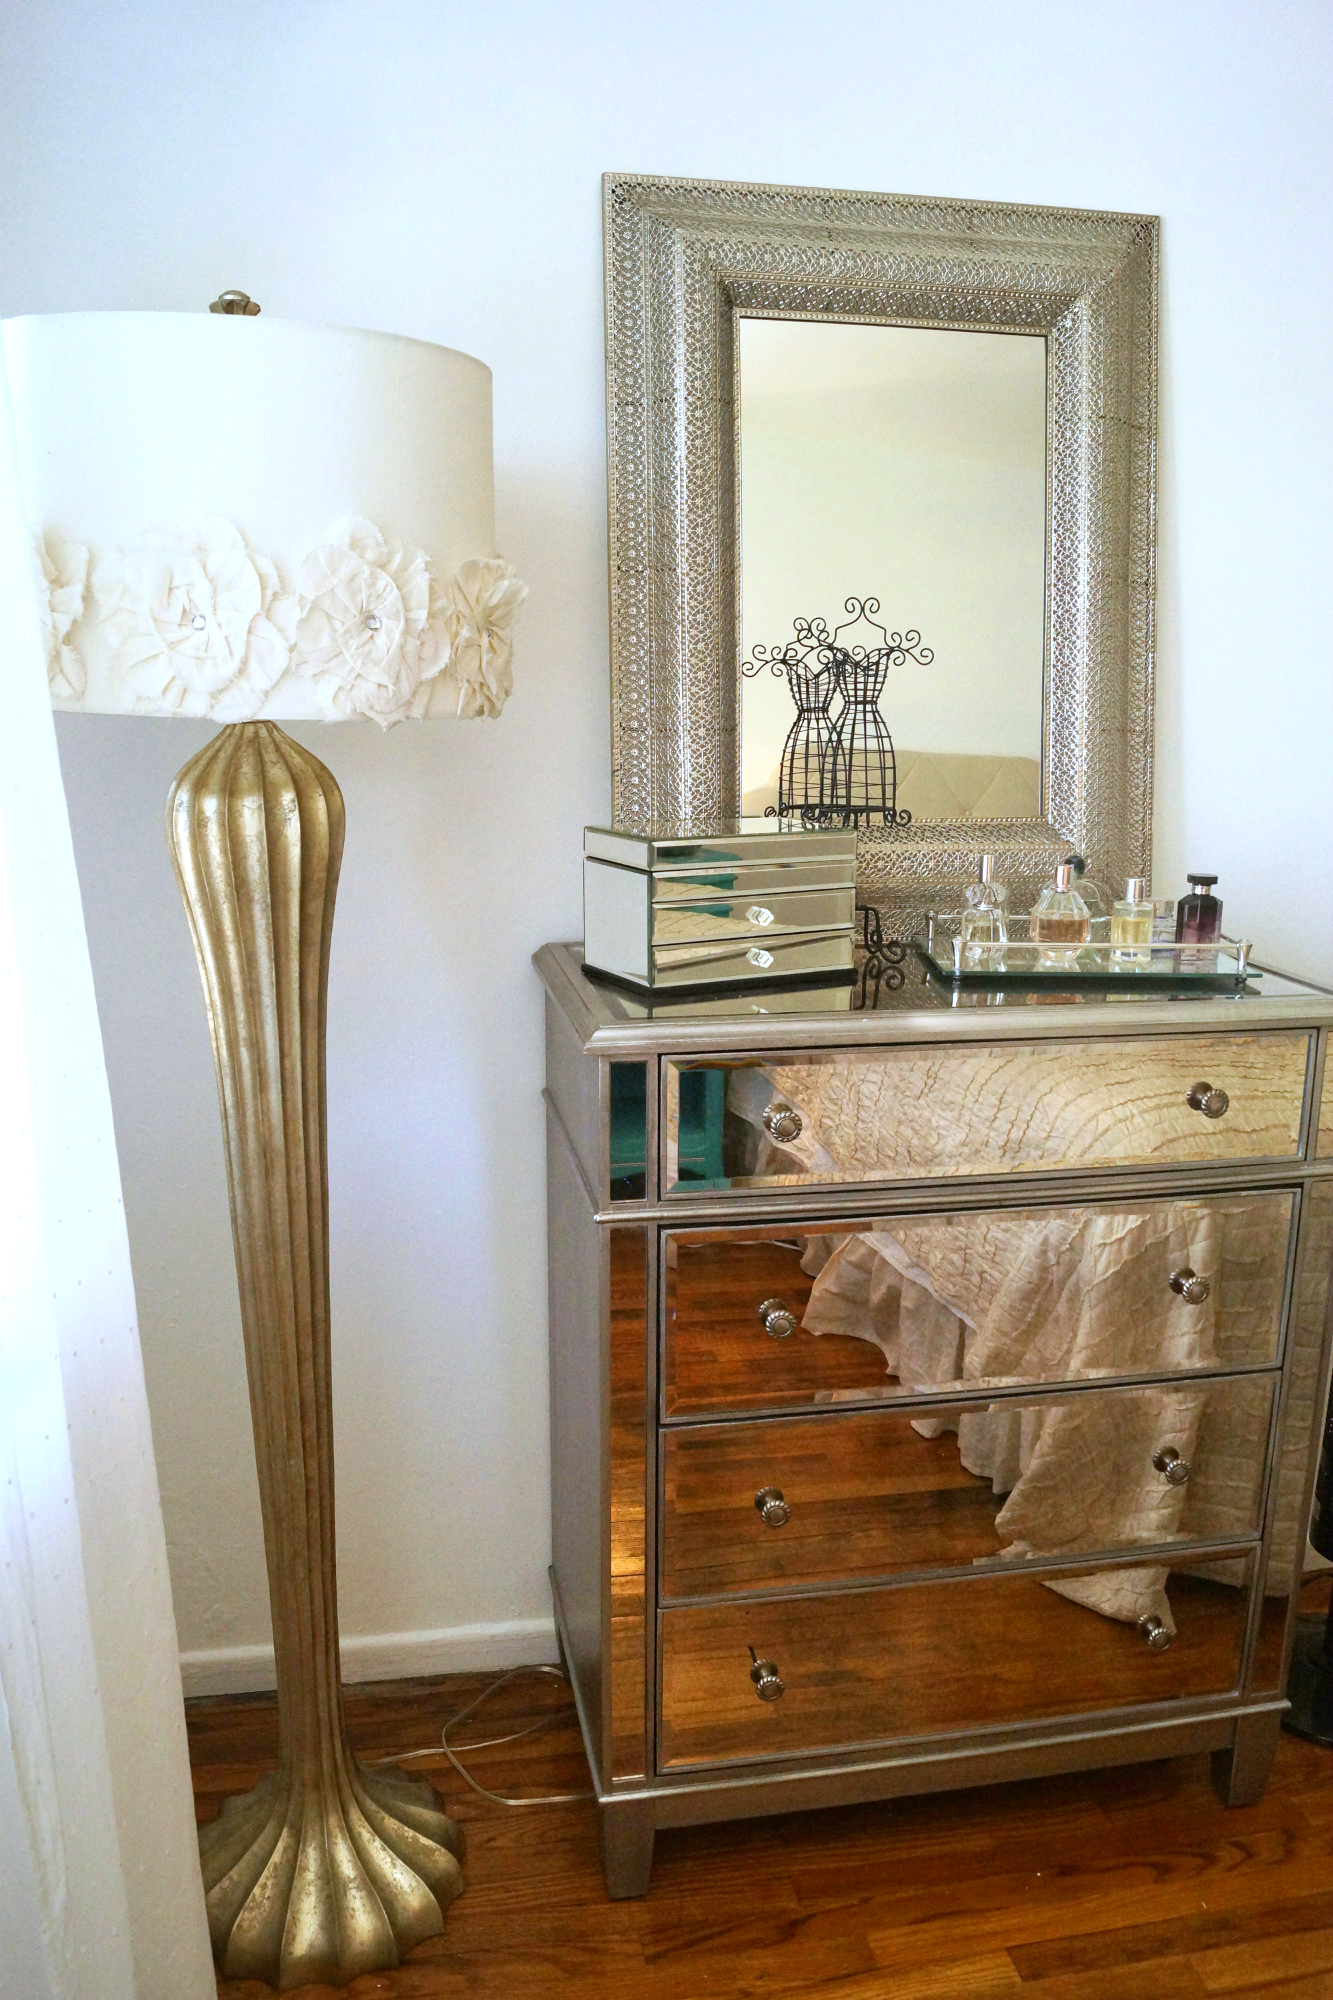 good looking modern drawer dresser target knobs darley organizer liners alluring heavenly autumn combo pulls ellie assembly quinn table changing accent full size white side oval